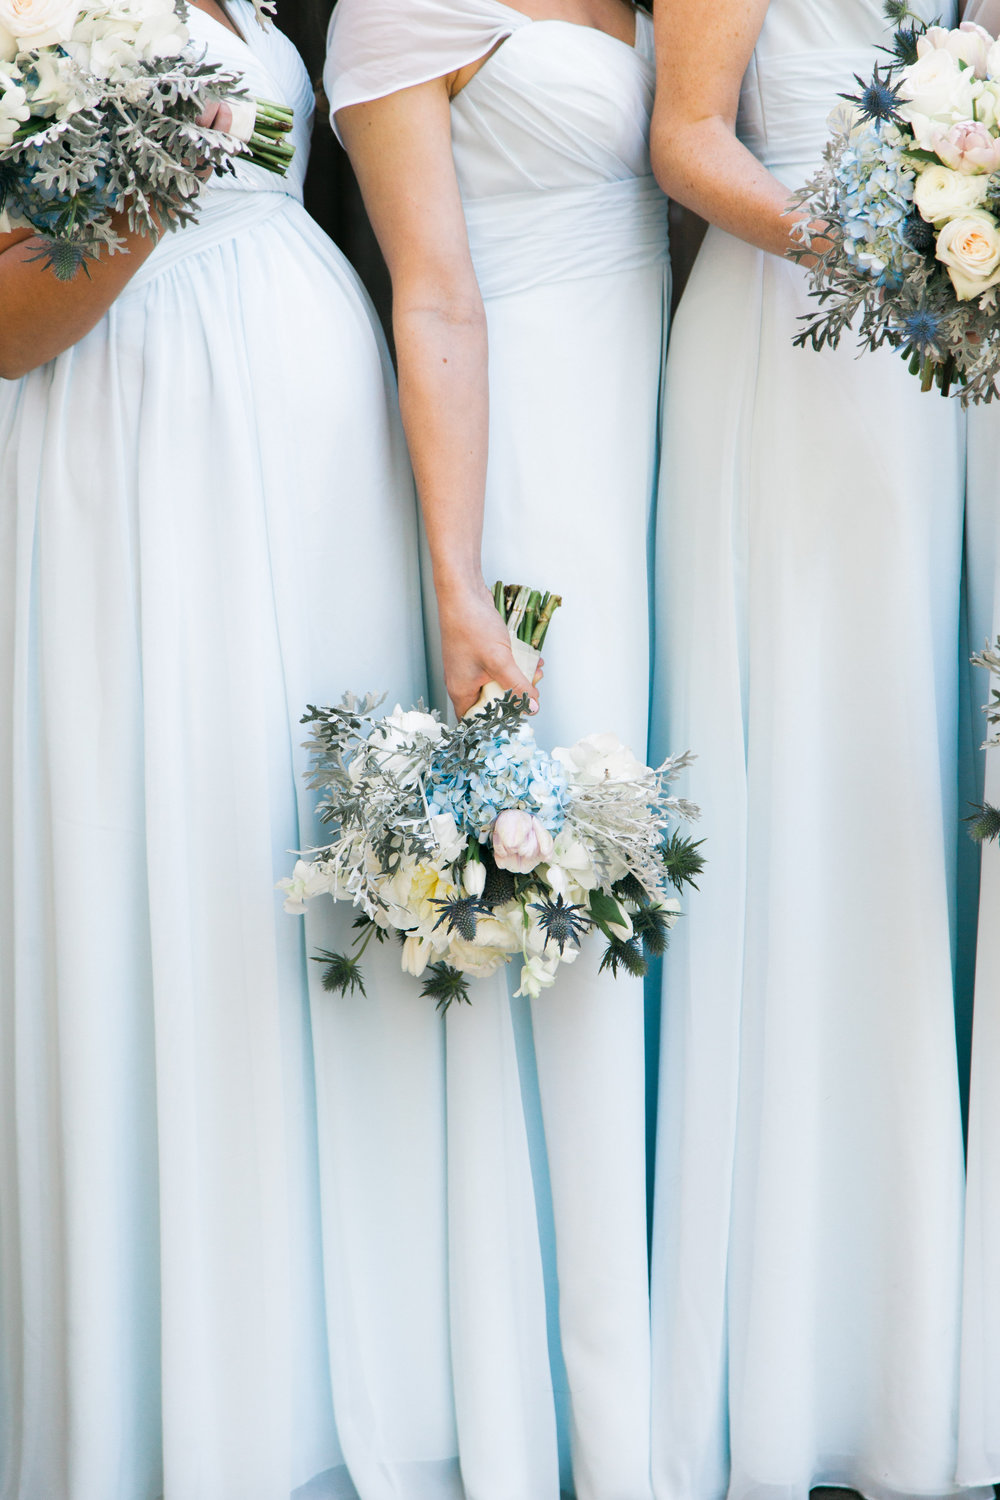 Gorgeous light blue bridesmaid dresses and wedding florals